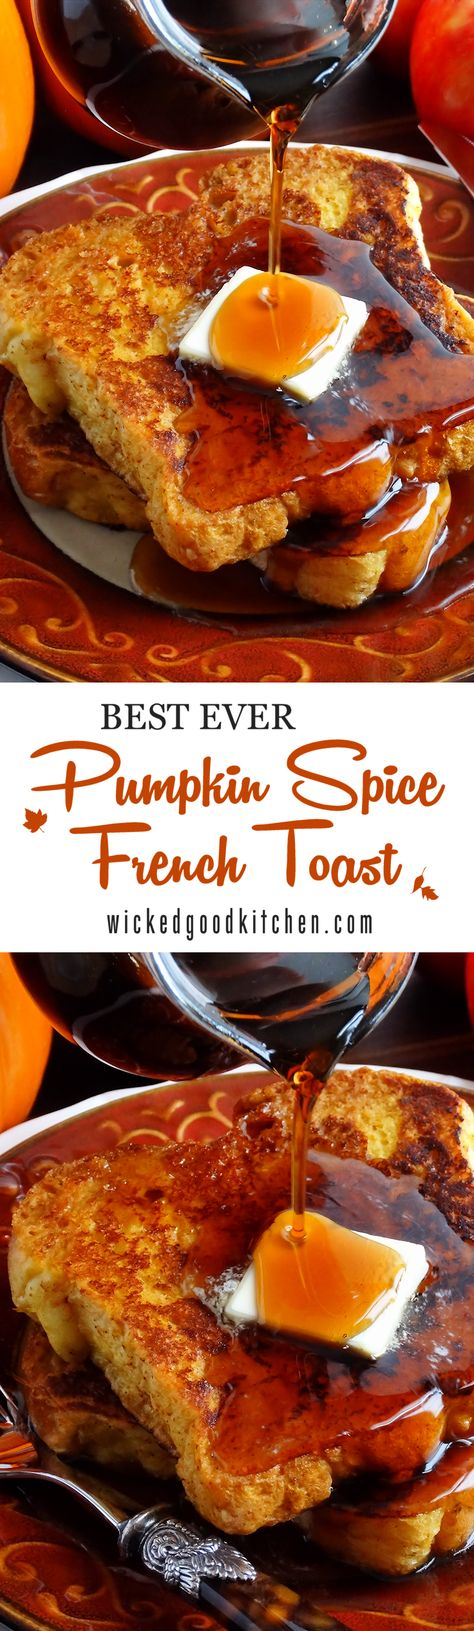 Pumpkin French Toast with homemade, quick and easy pumpkin butter! Perfect for weekend mornings and holidays, and the Maple Syrup Harvest season! (breakfast, brunch, Holiday, Thanksgiving recipe)